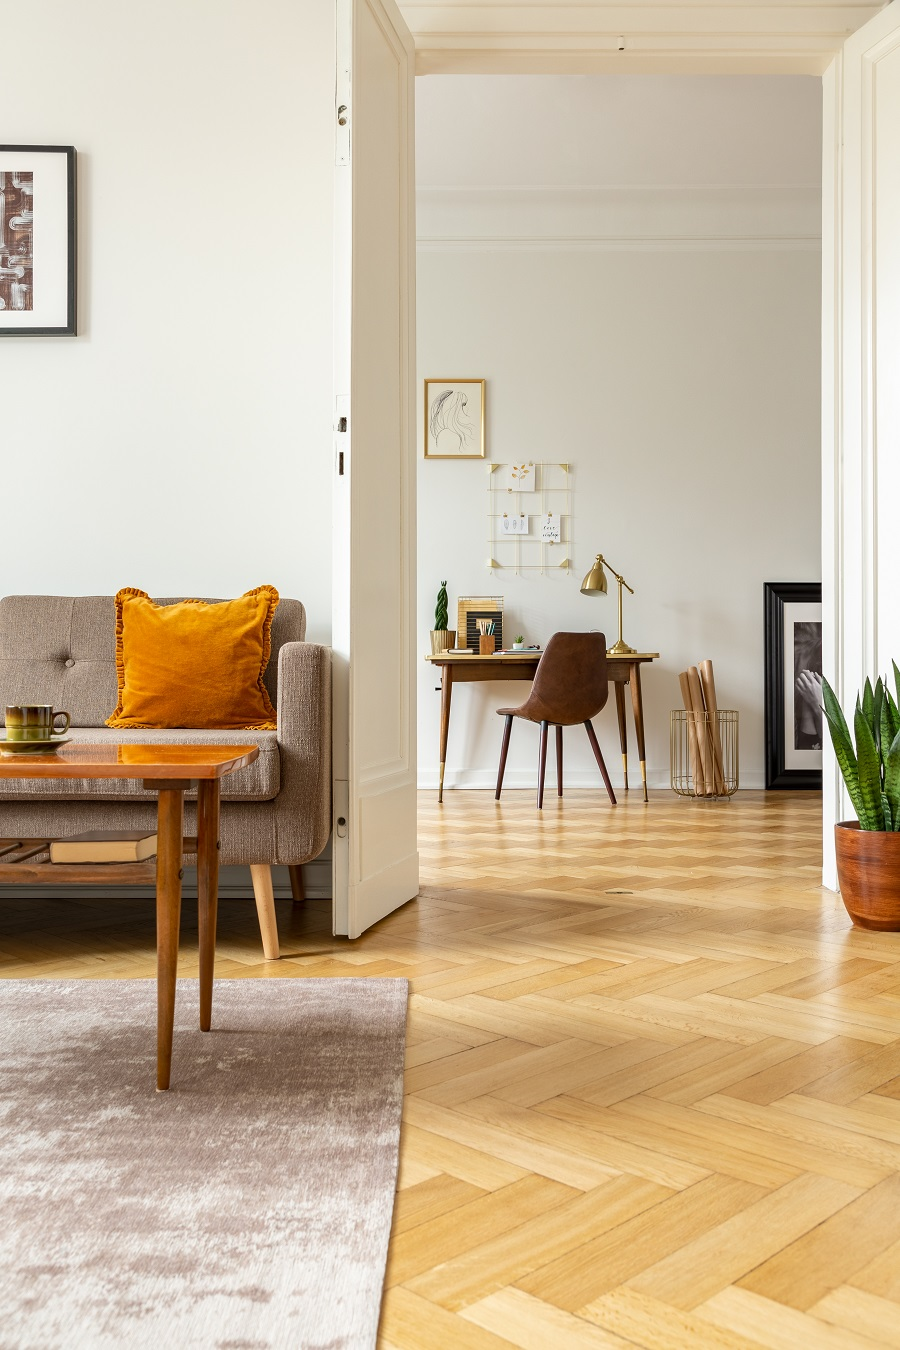 New Flooring Everything You Need to Know Before You Purchase